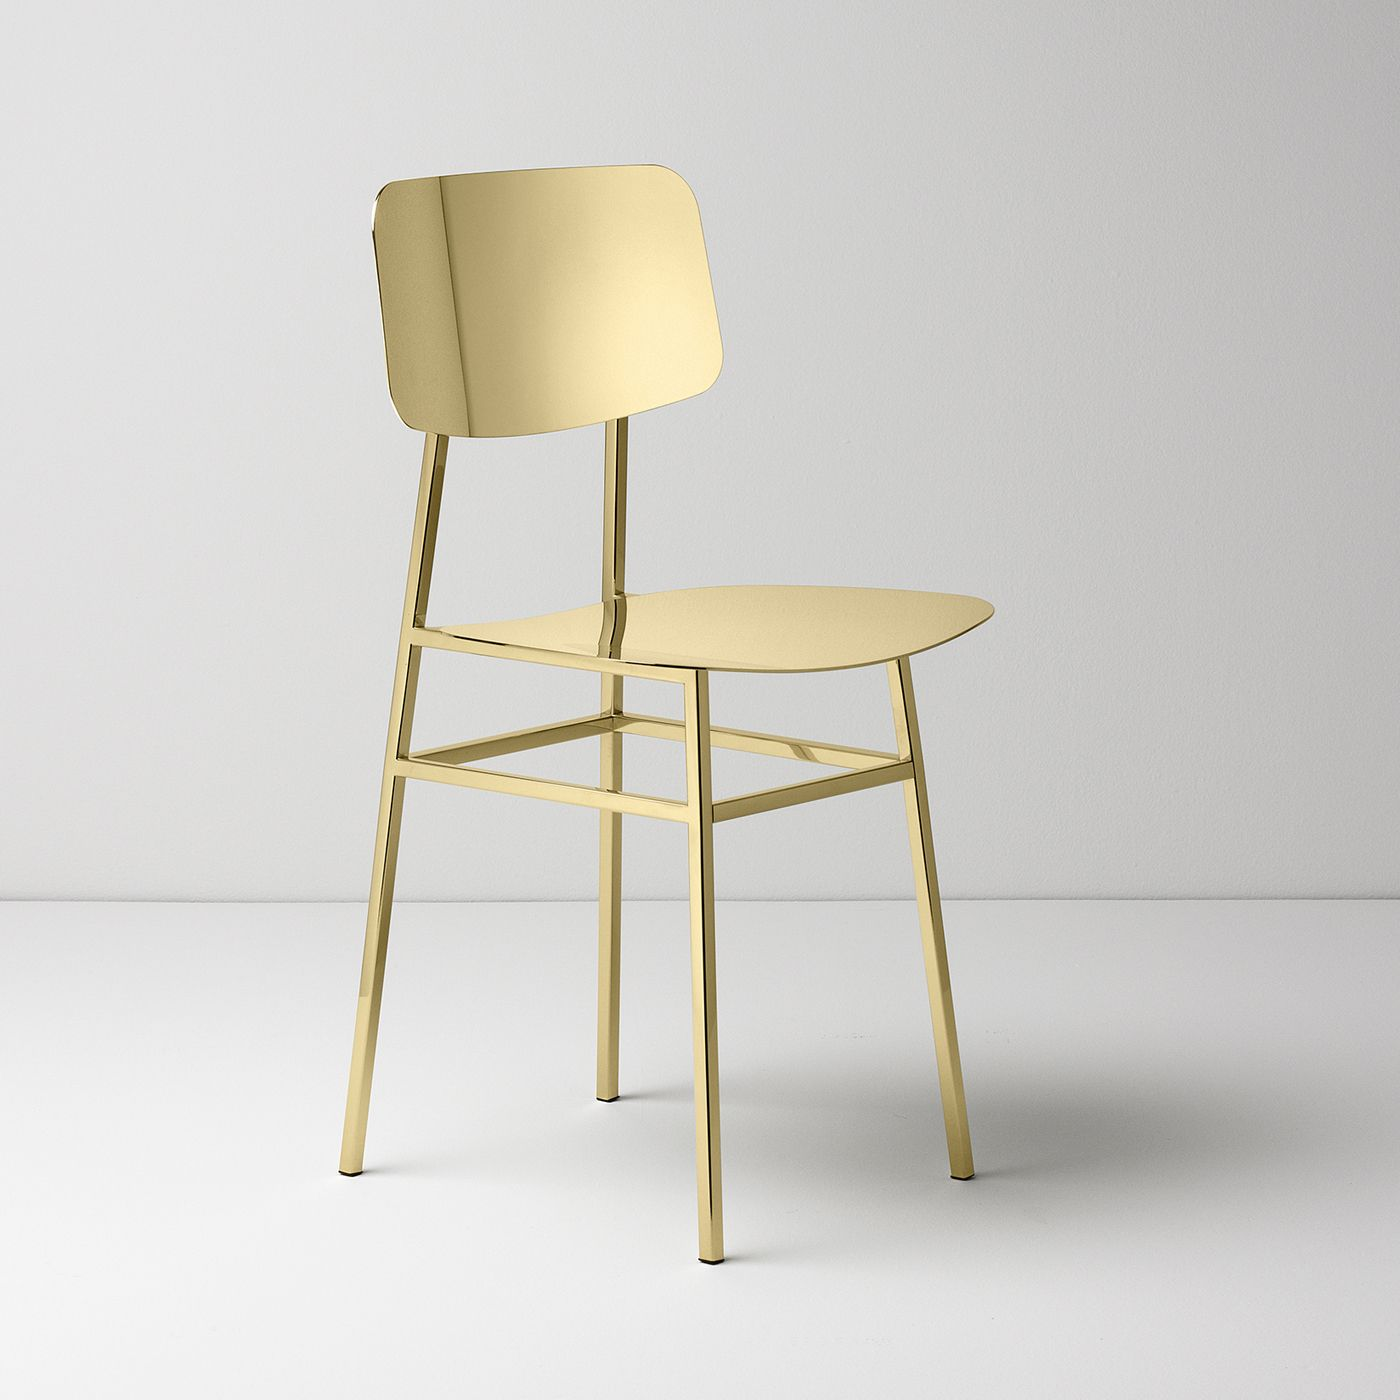 Miami Chair designed by Nika Zupanc- Ghidini 1961 online at Artemest